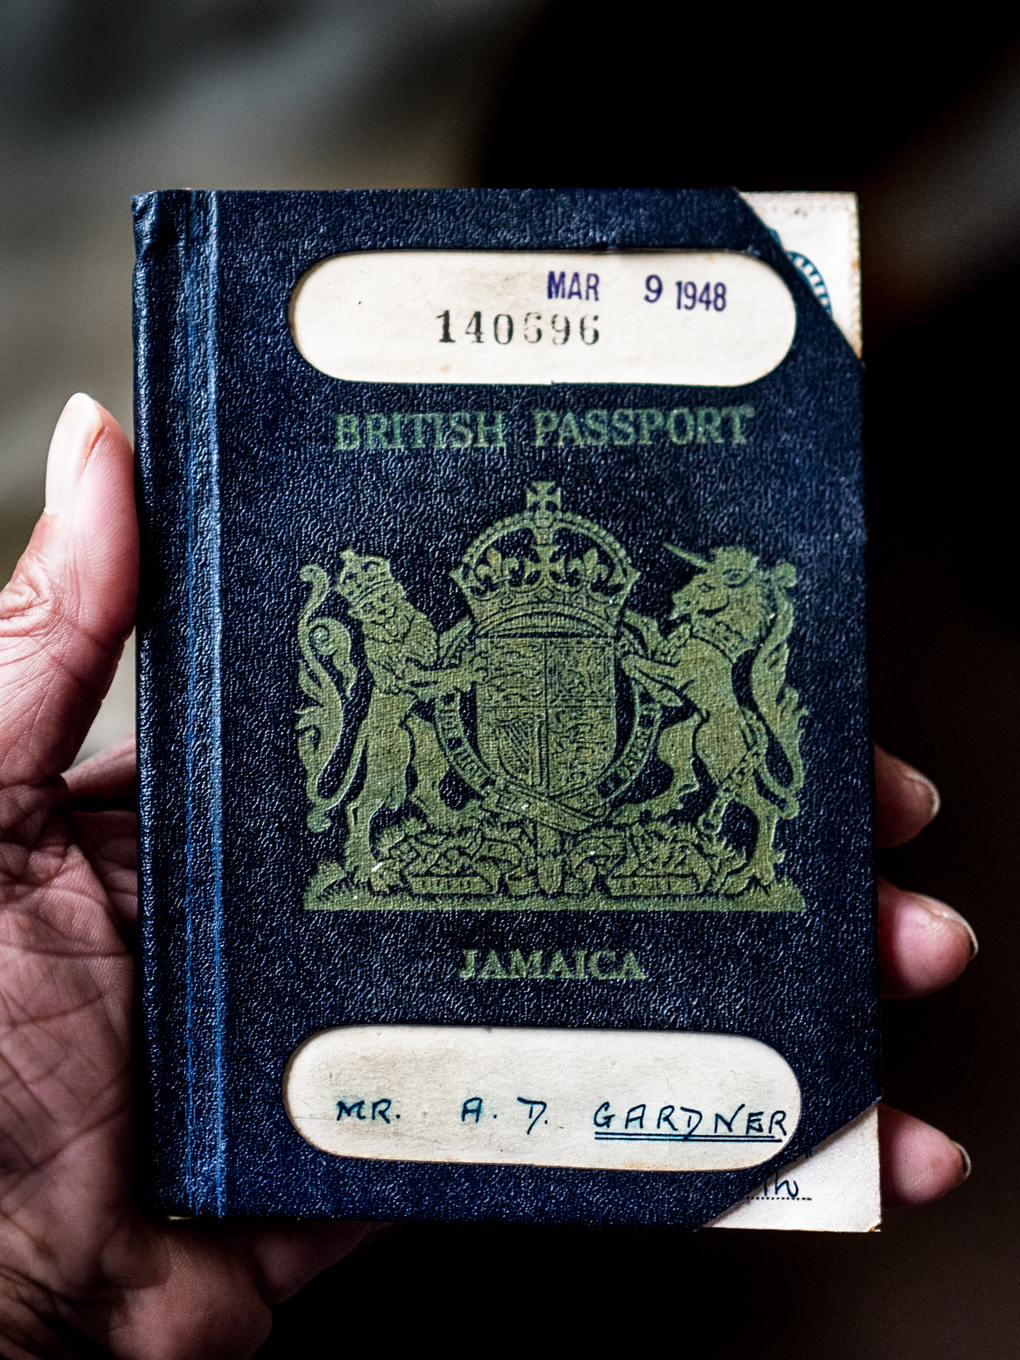 'WINDRUSHER' ALFORD GARDNER: 1948 PASSPORT